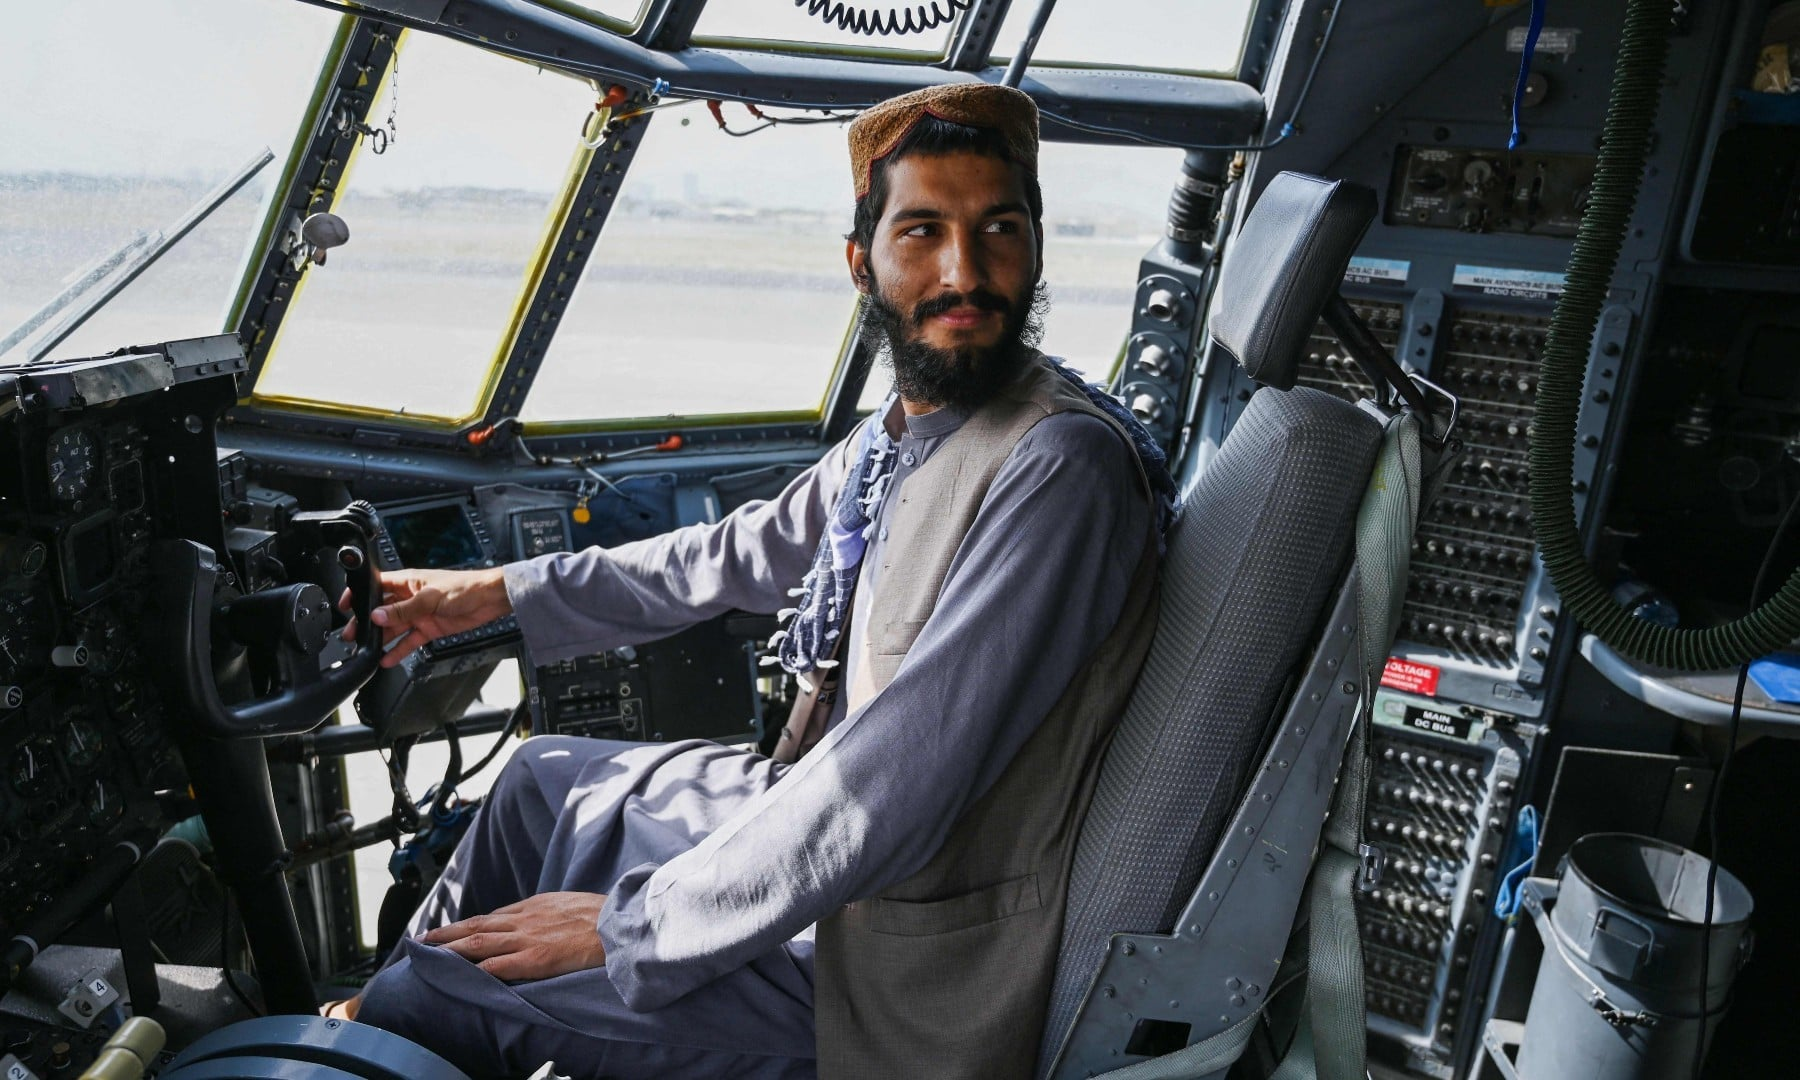 A Taliban fighter sits inside the cockpit of an Afghan Air Force aircraft at the airport in Kabul on August 31. — AFP